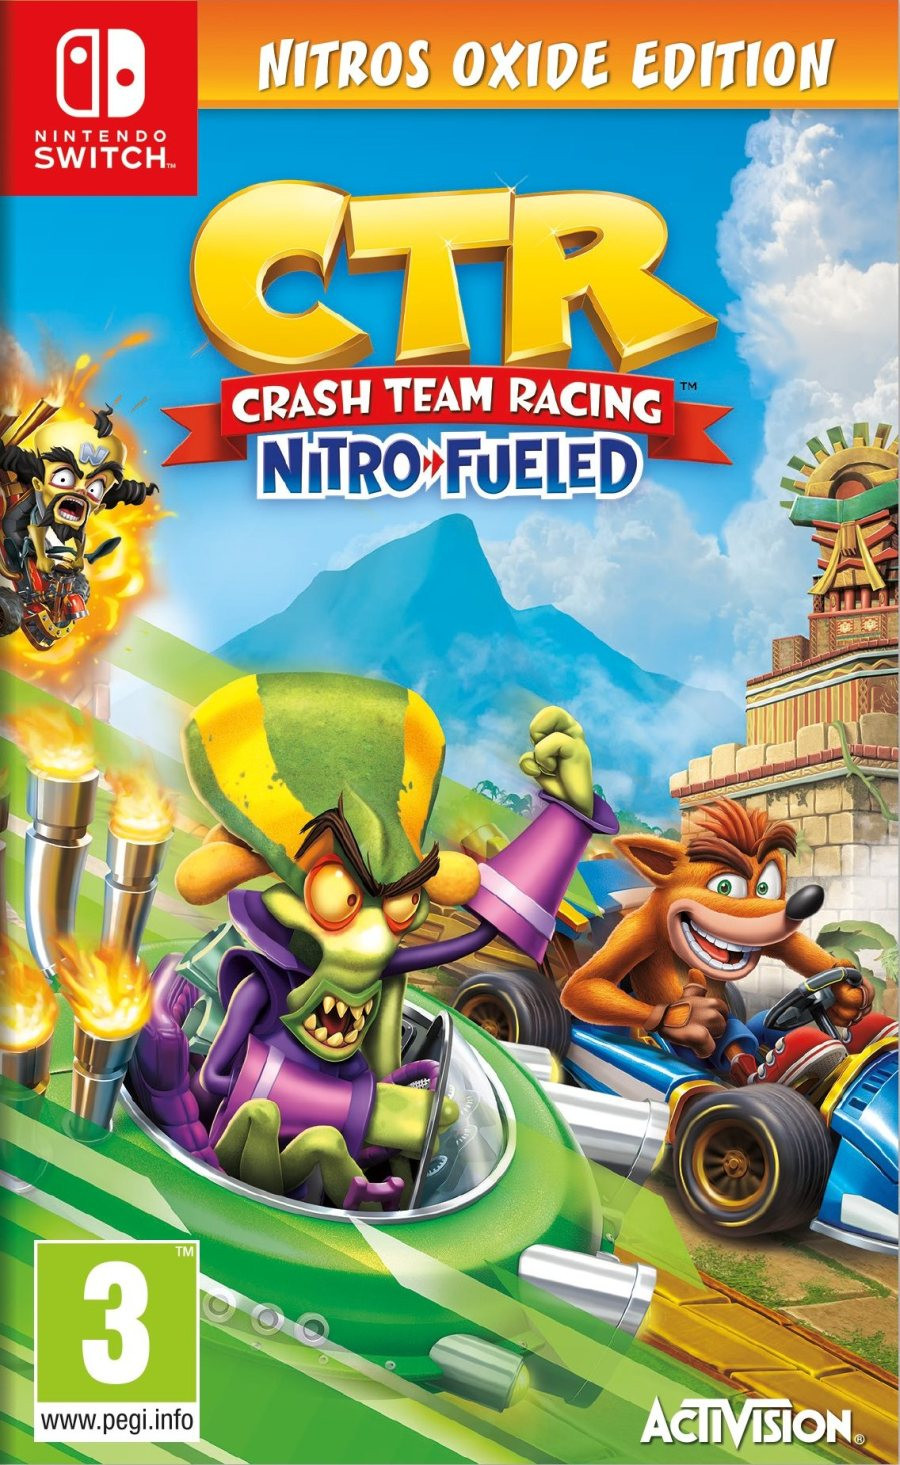 SWITCH Crash Team Racing Nitro-Fueled - Nitros Oxide Edition